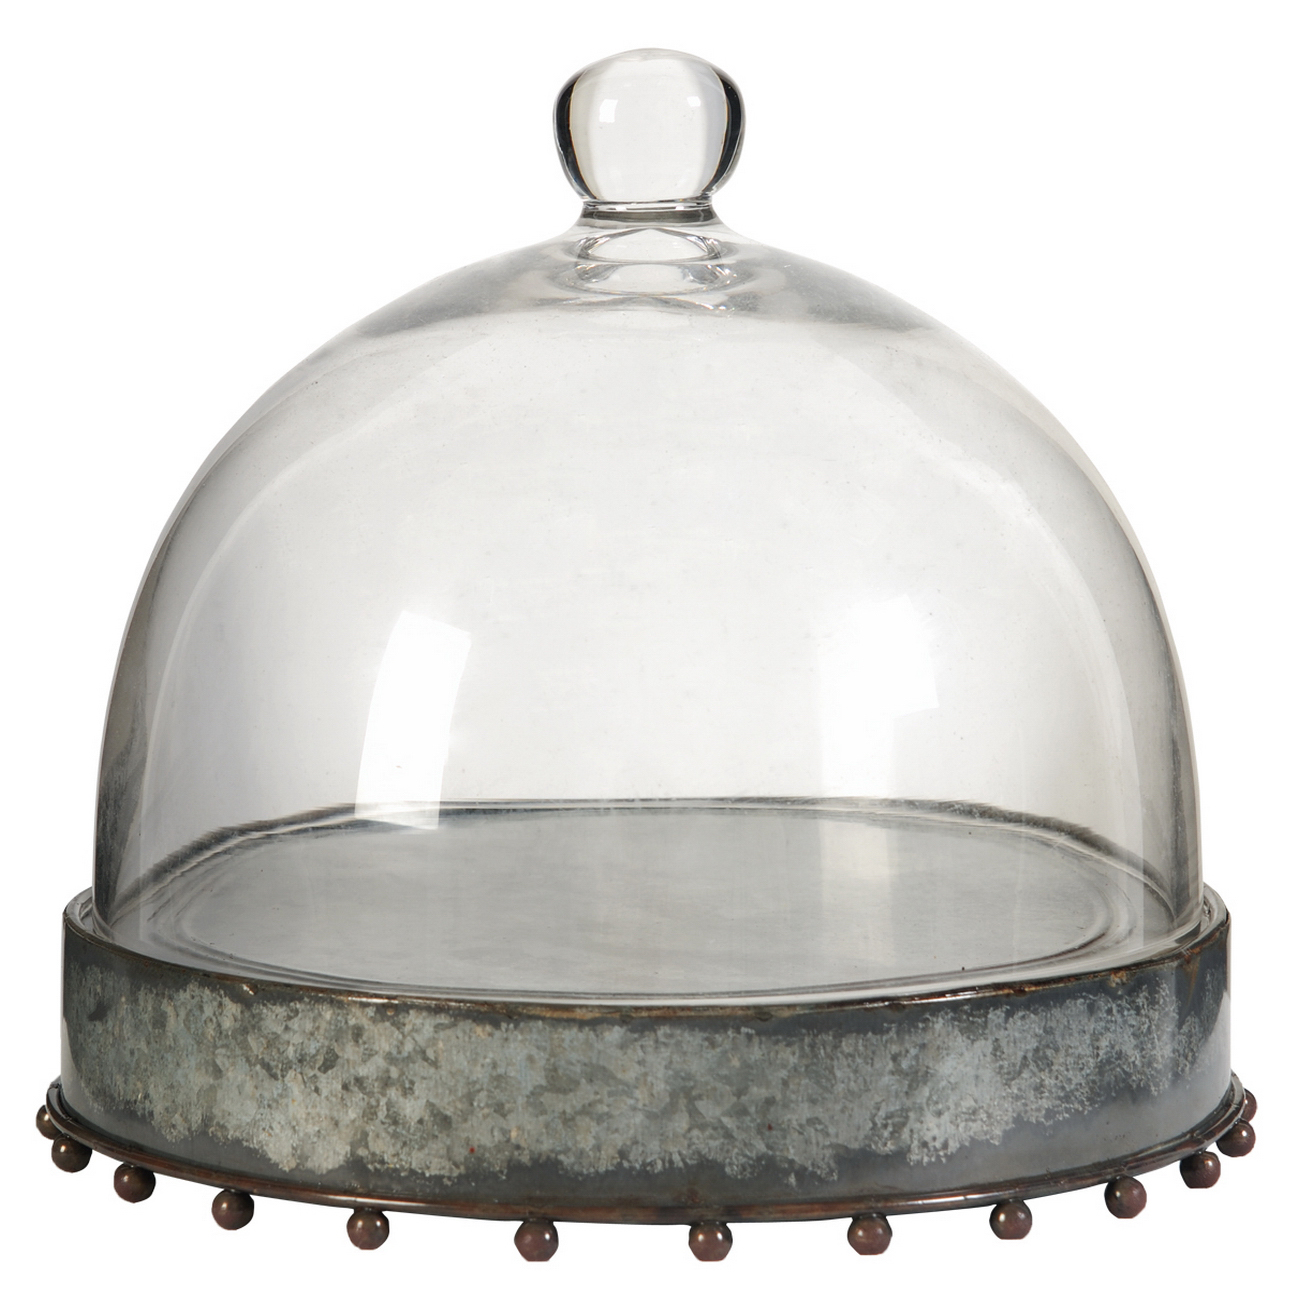 Glass Cake Dome with No Stand